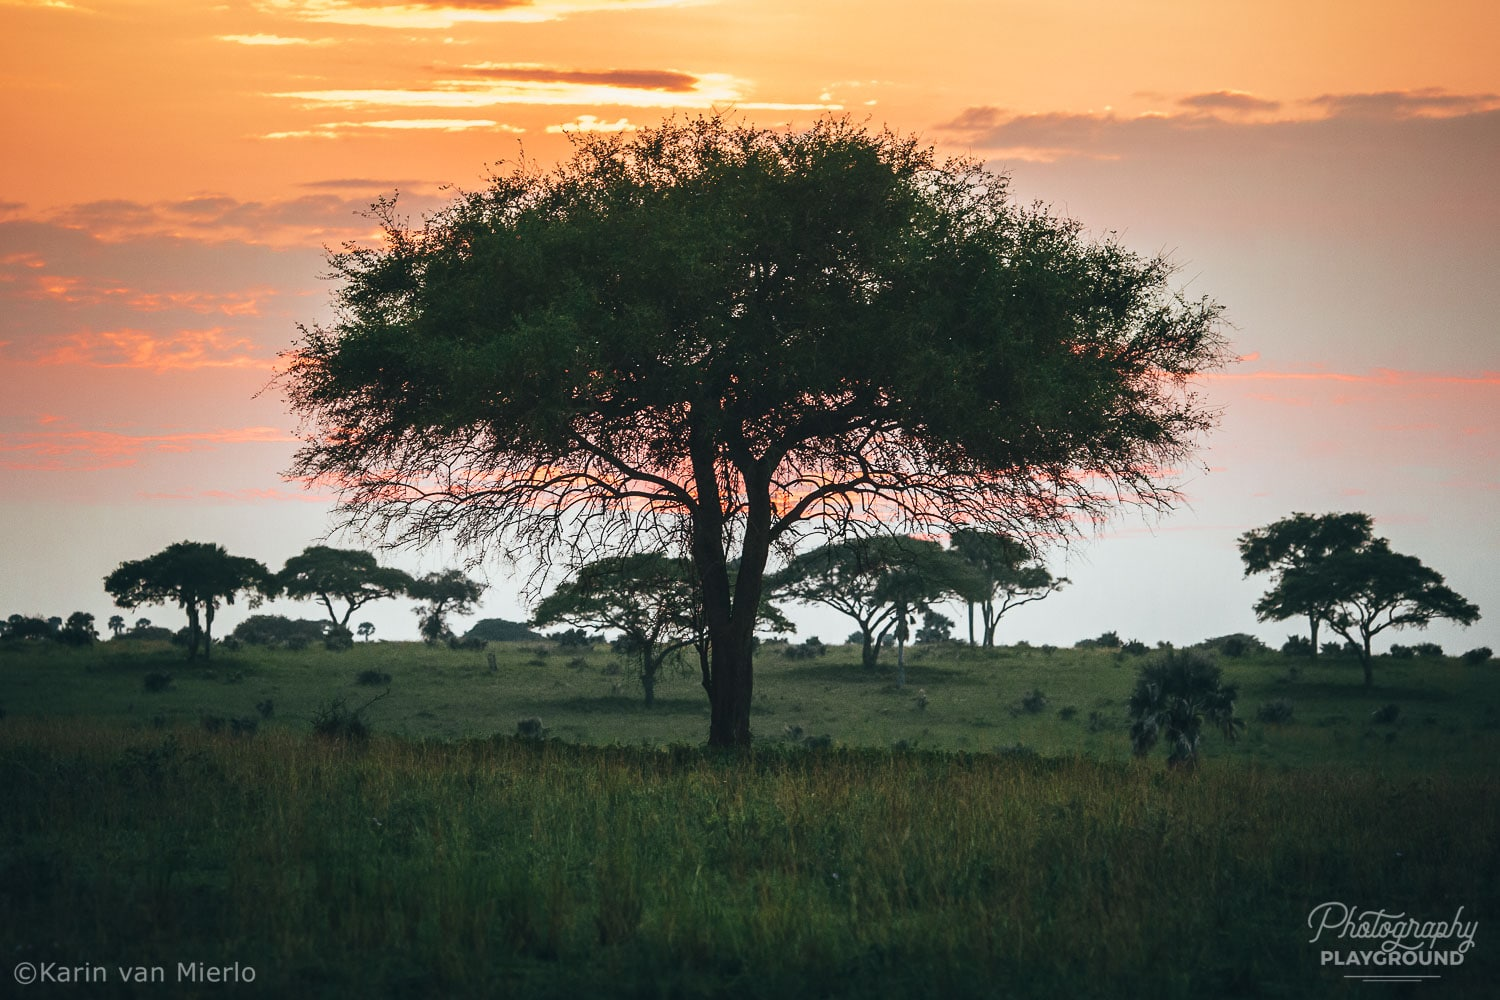 sunset photography, how to photograph the sunset | Photo: Sunrise at Murchison Park, Uganda ©Karin van Mierlo, Photography Playground